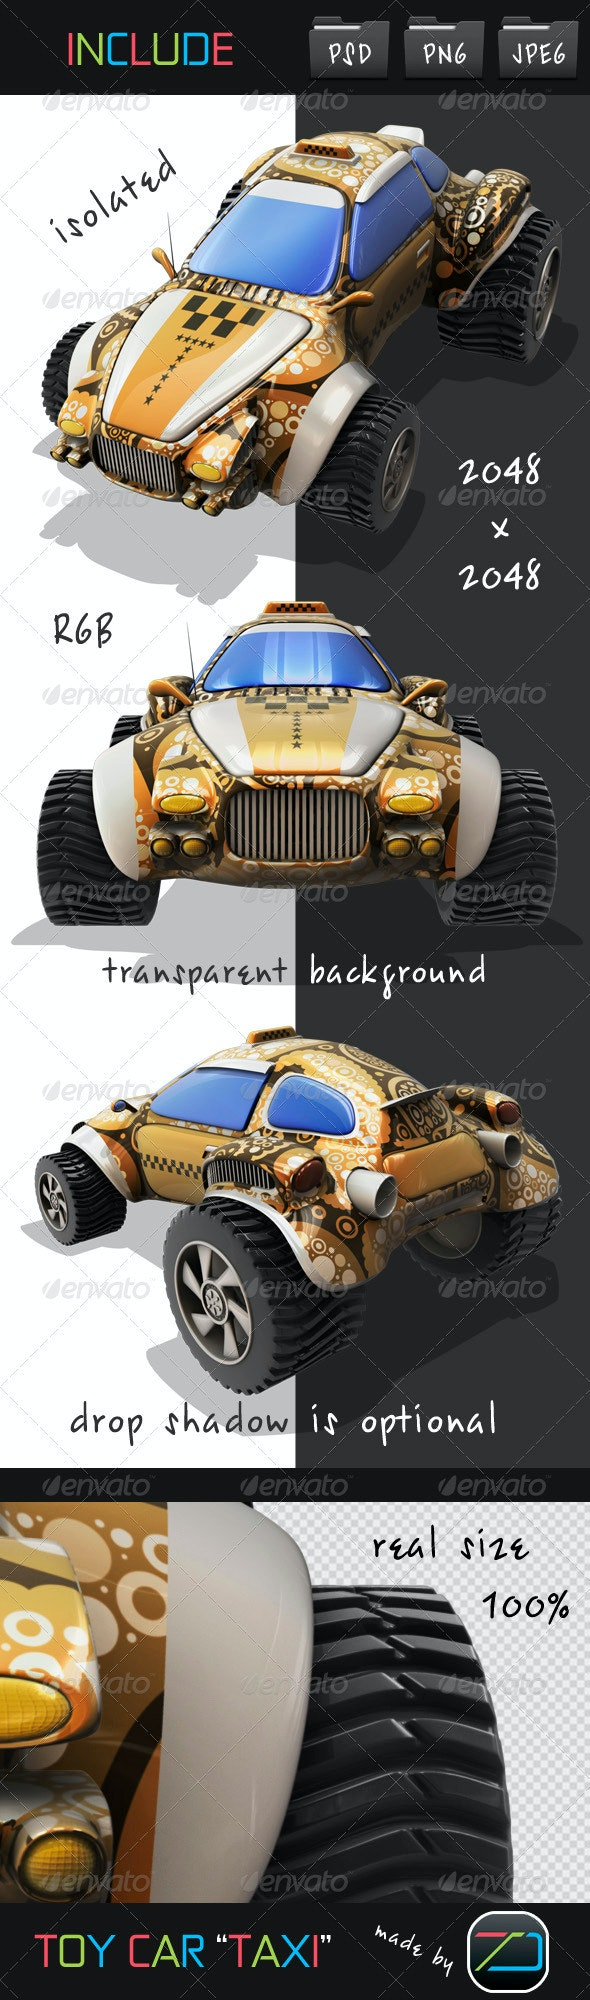 Toy Car TAXI - Objects 3D Renders